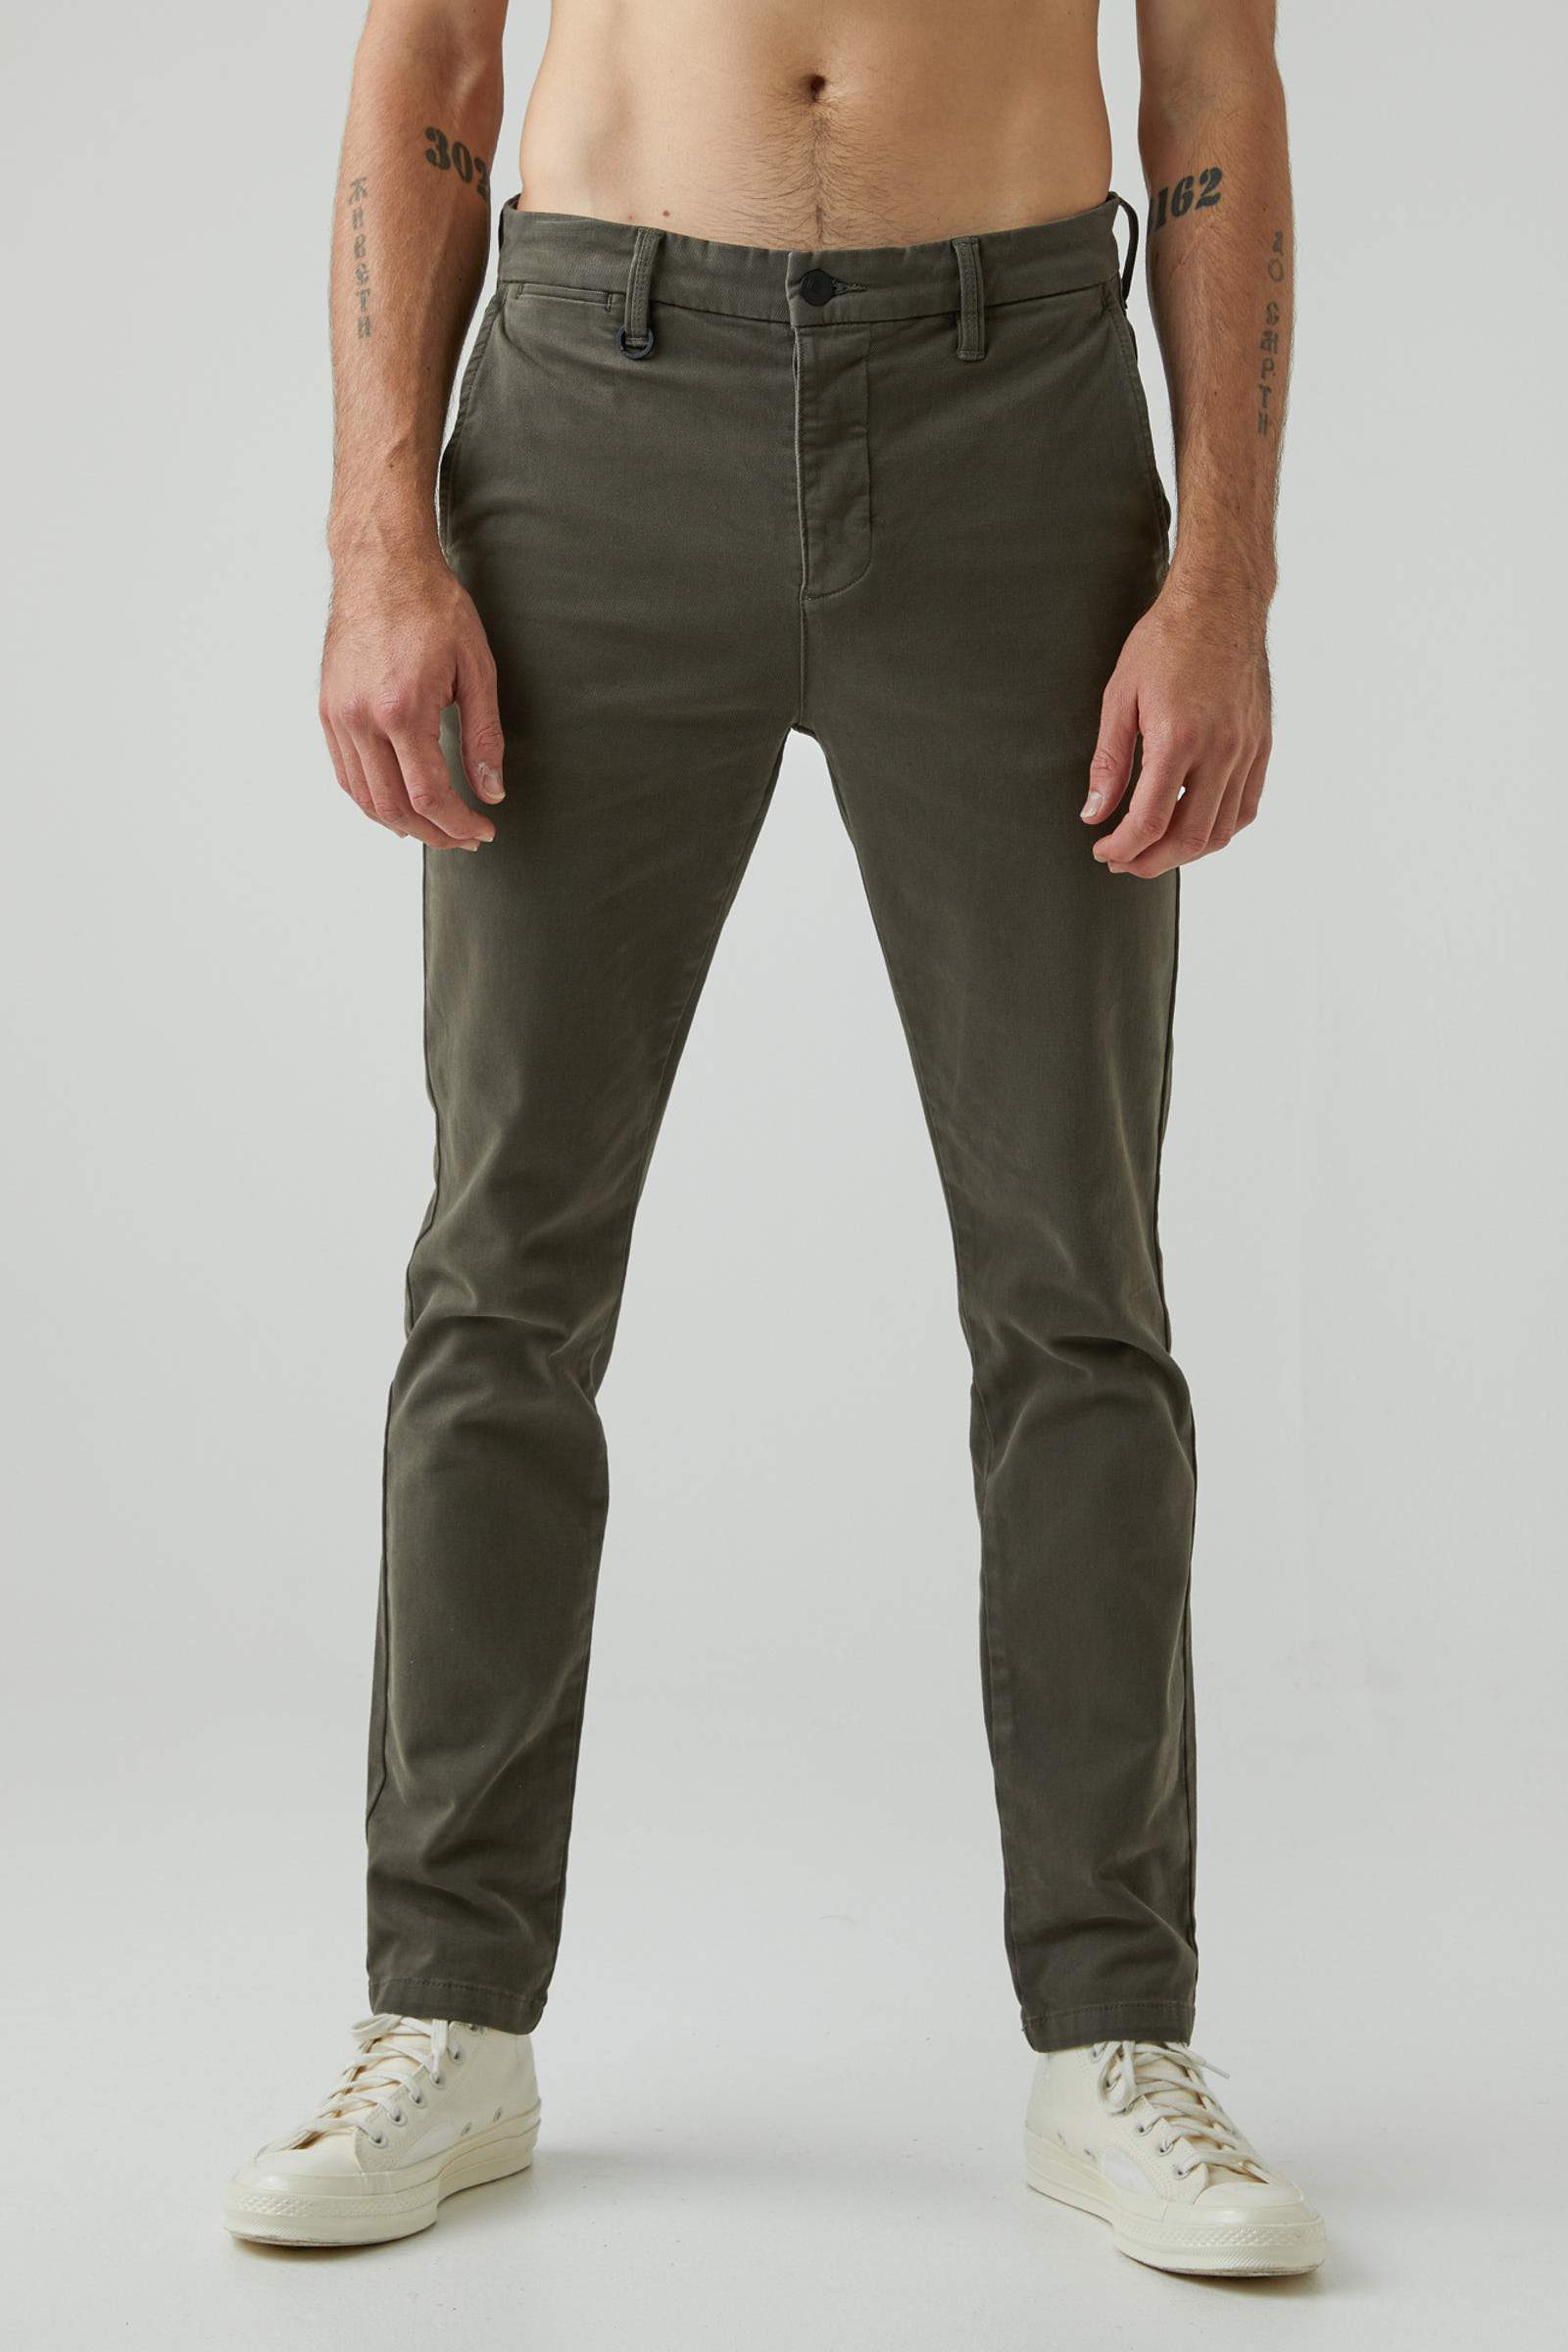 Clash Slim Pant - Military